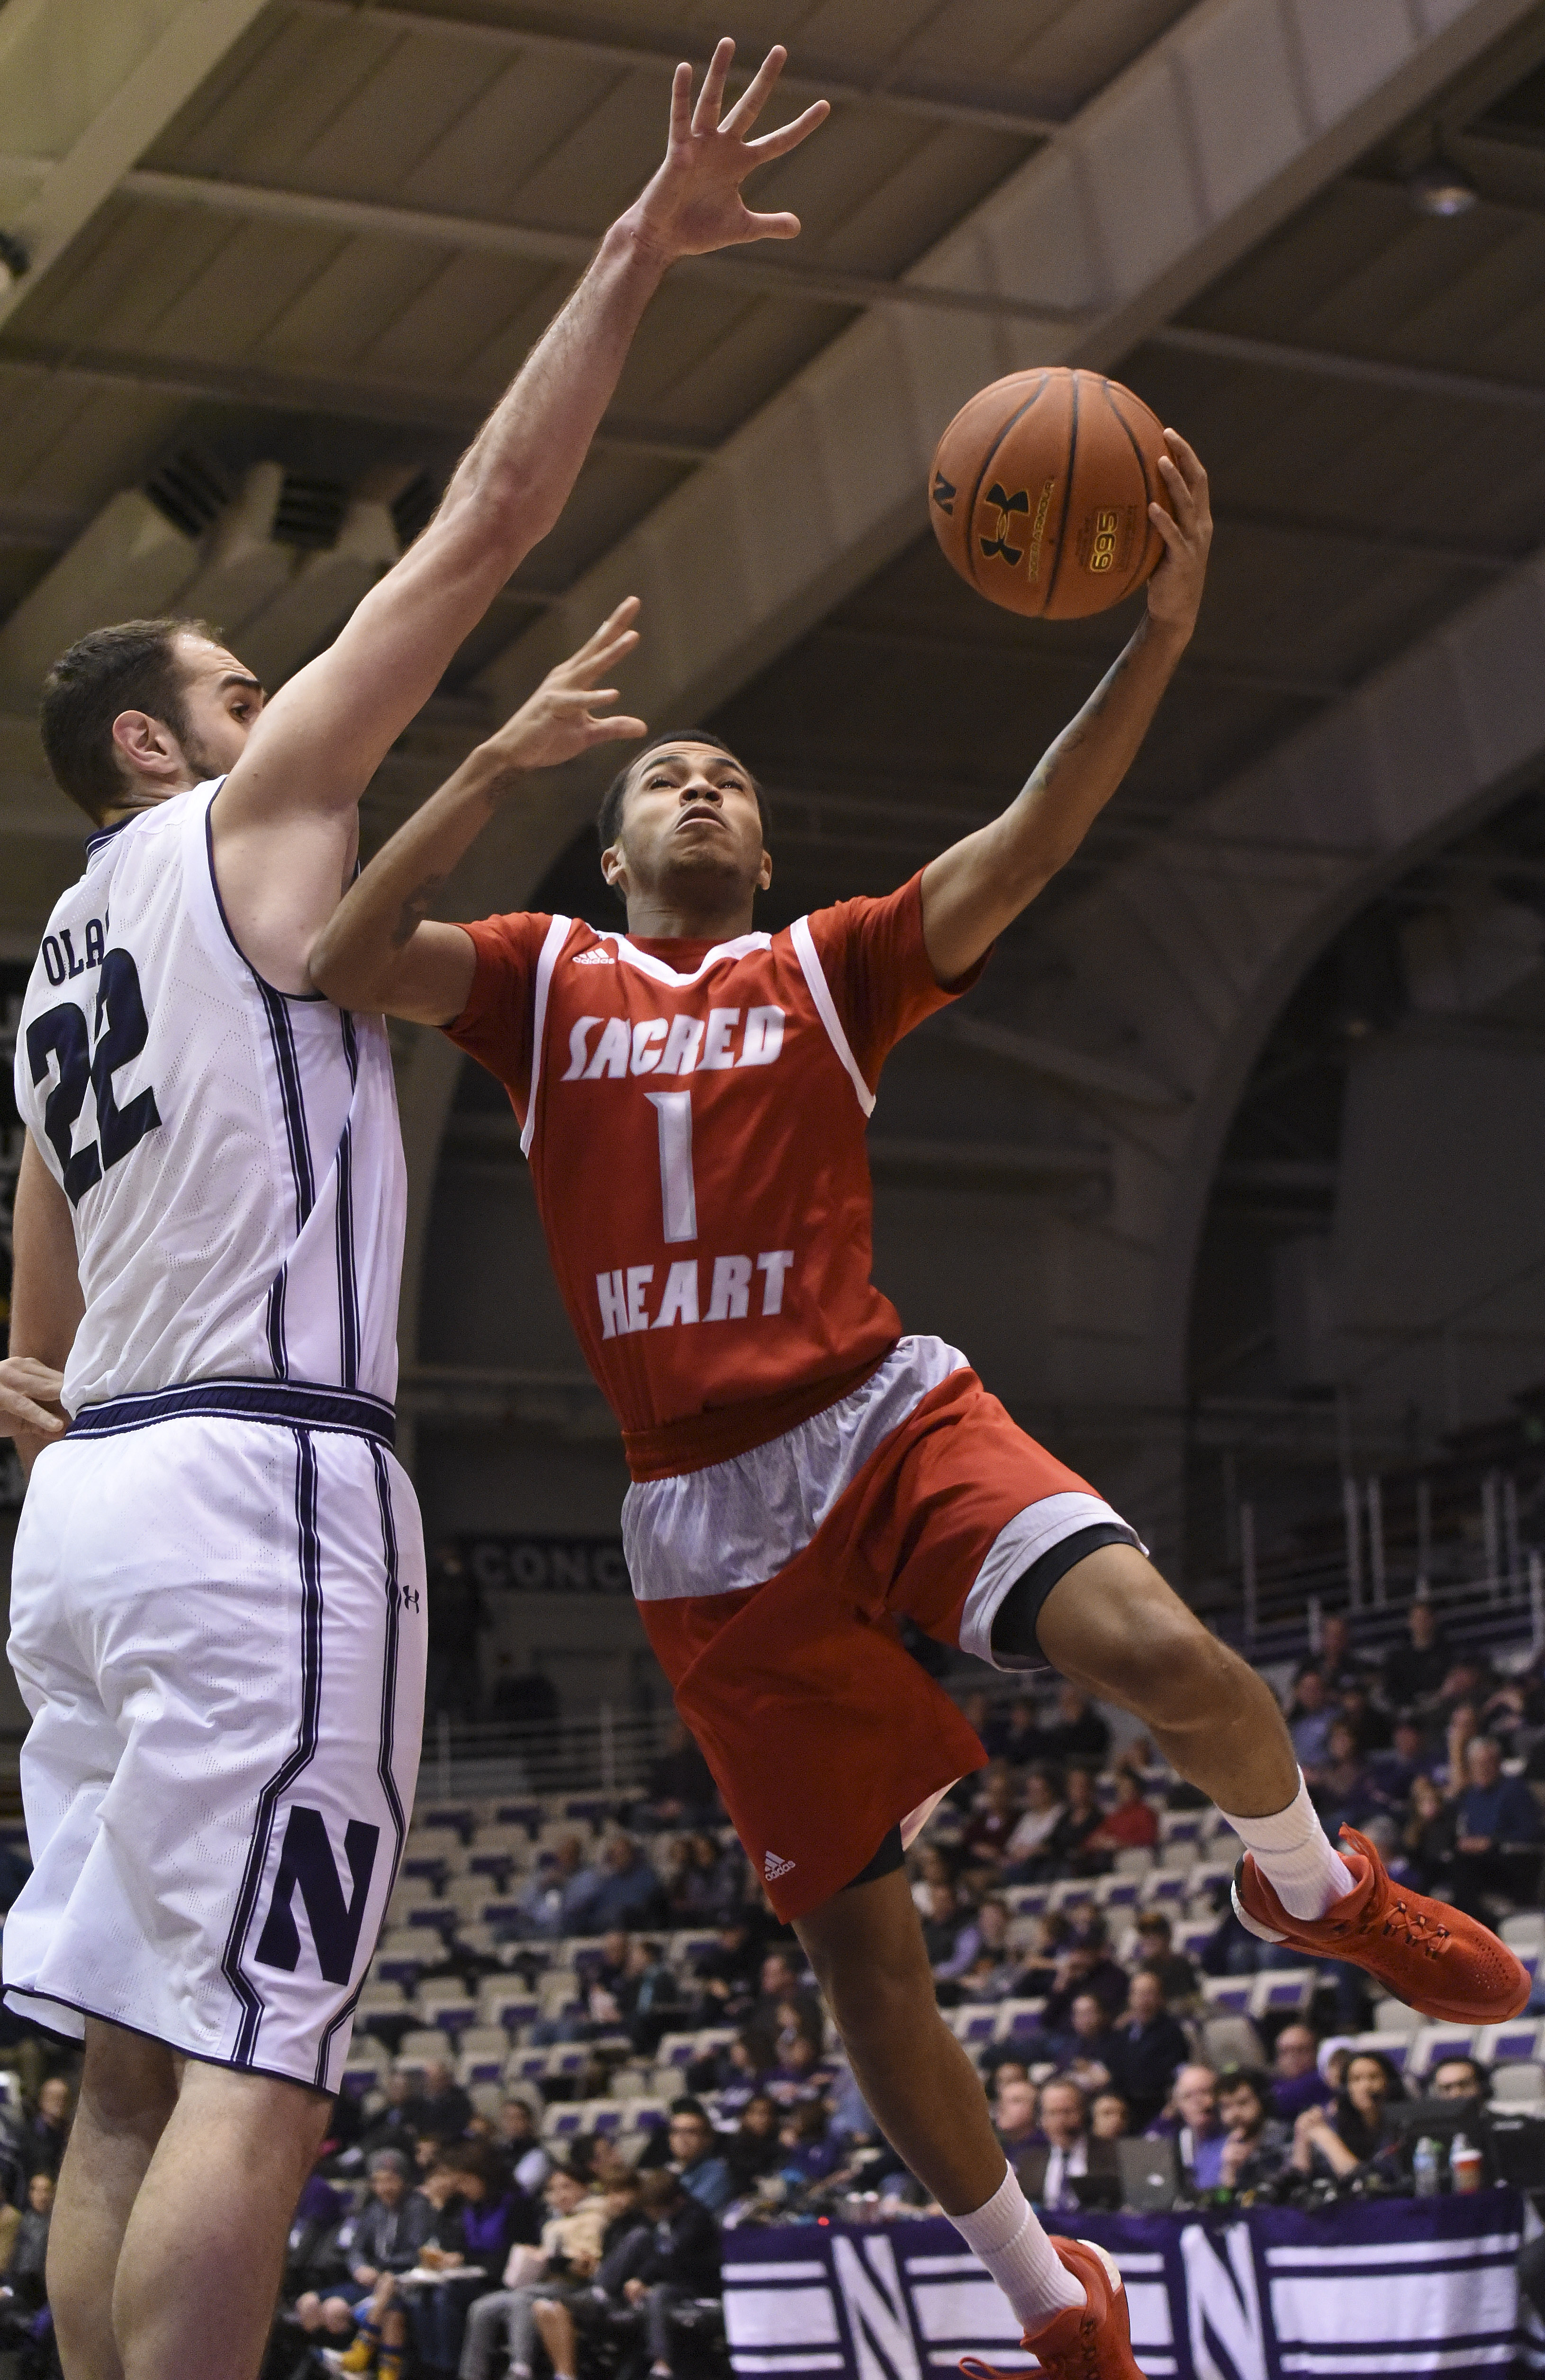 Sacred Heart guard Cane Broome (1) is defended by Northwestern center Alex Olah (22) during the first half of an NCAA college basketball game Monday, Dec. 21, 2015, in Evanston Ill. (AP Photo/David Banks)